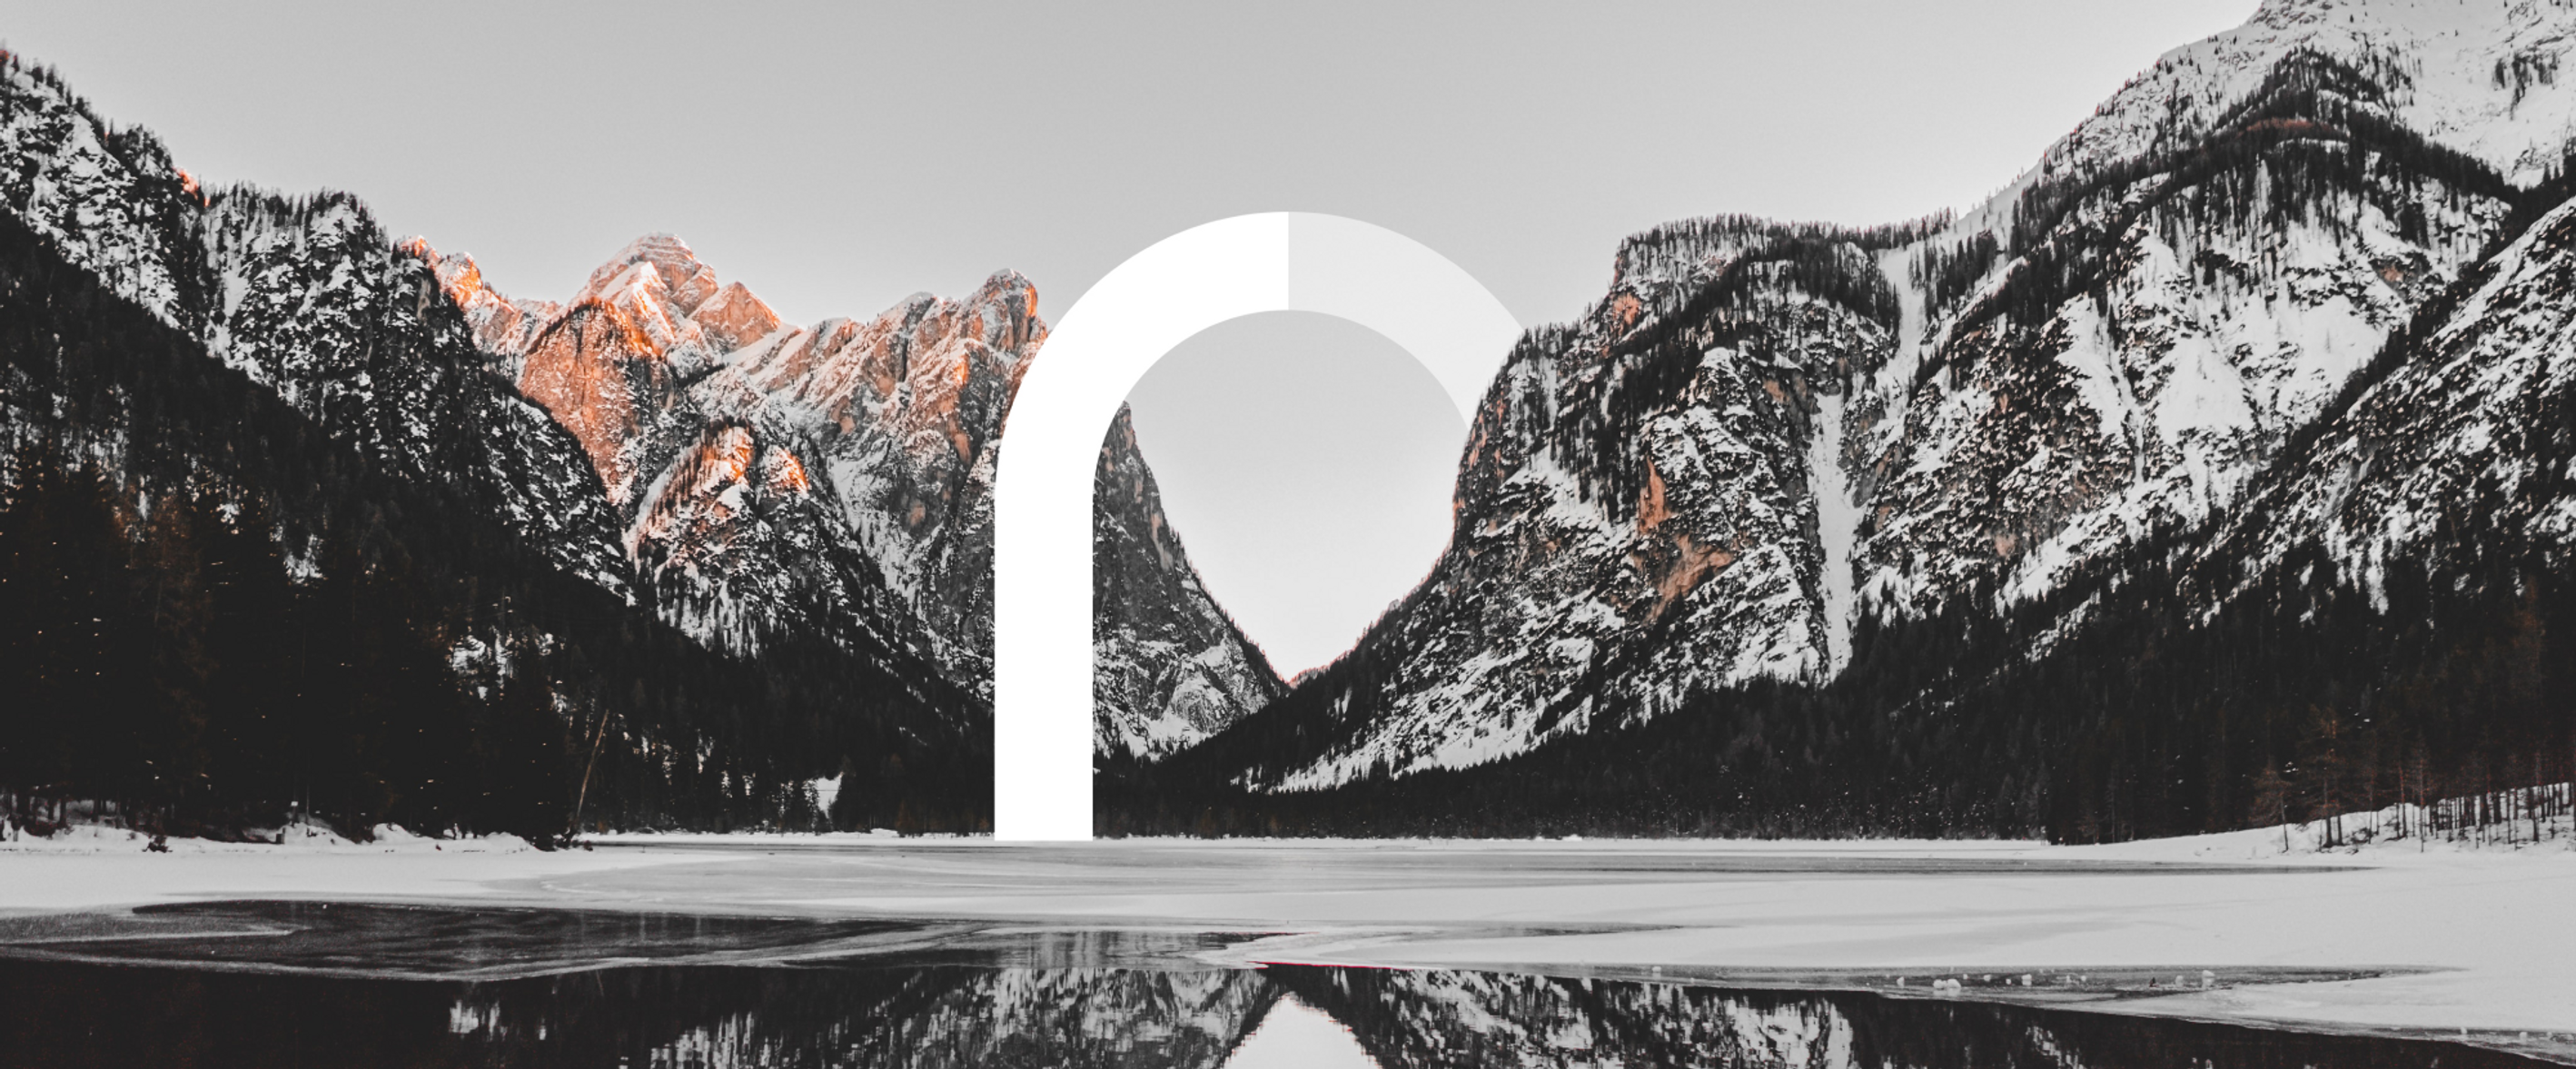 Mountain scape with the letter n bridging a gap